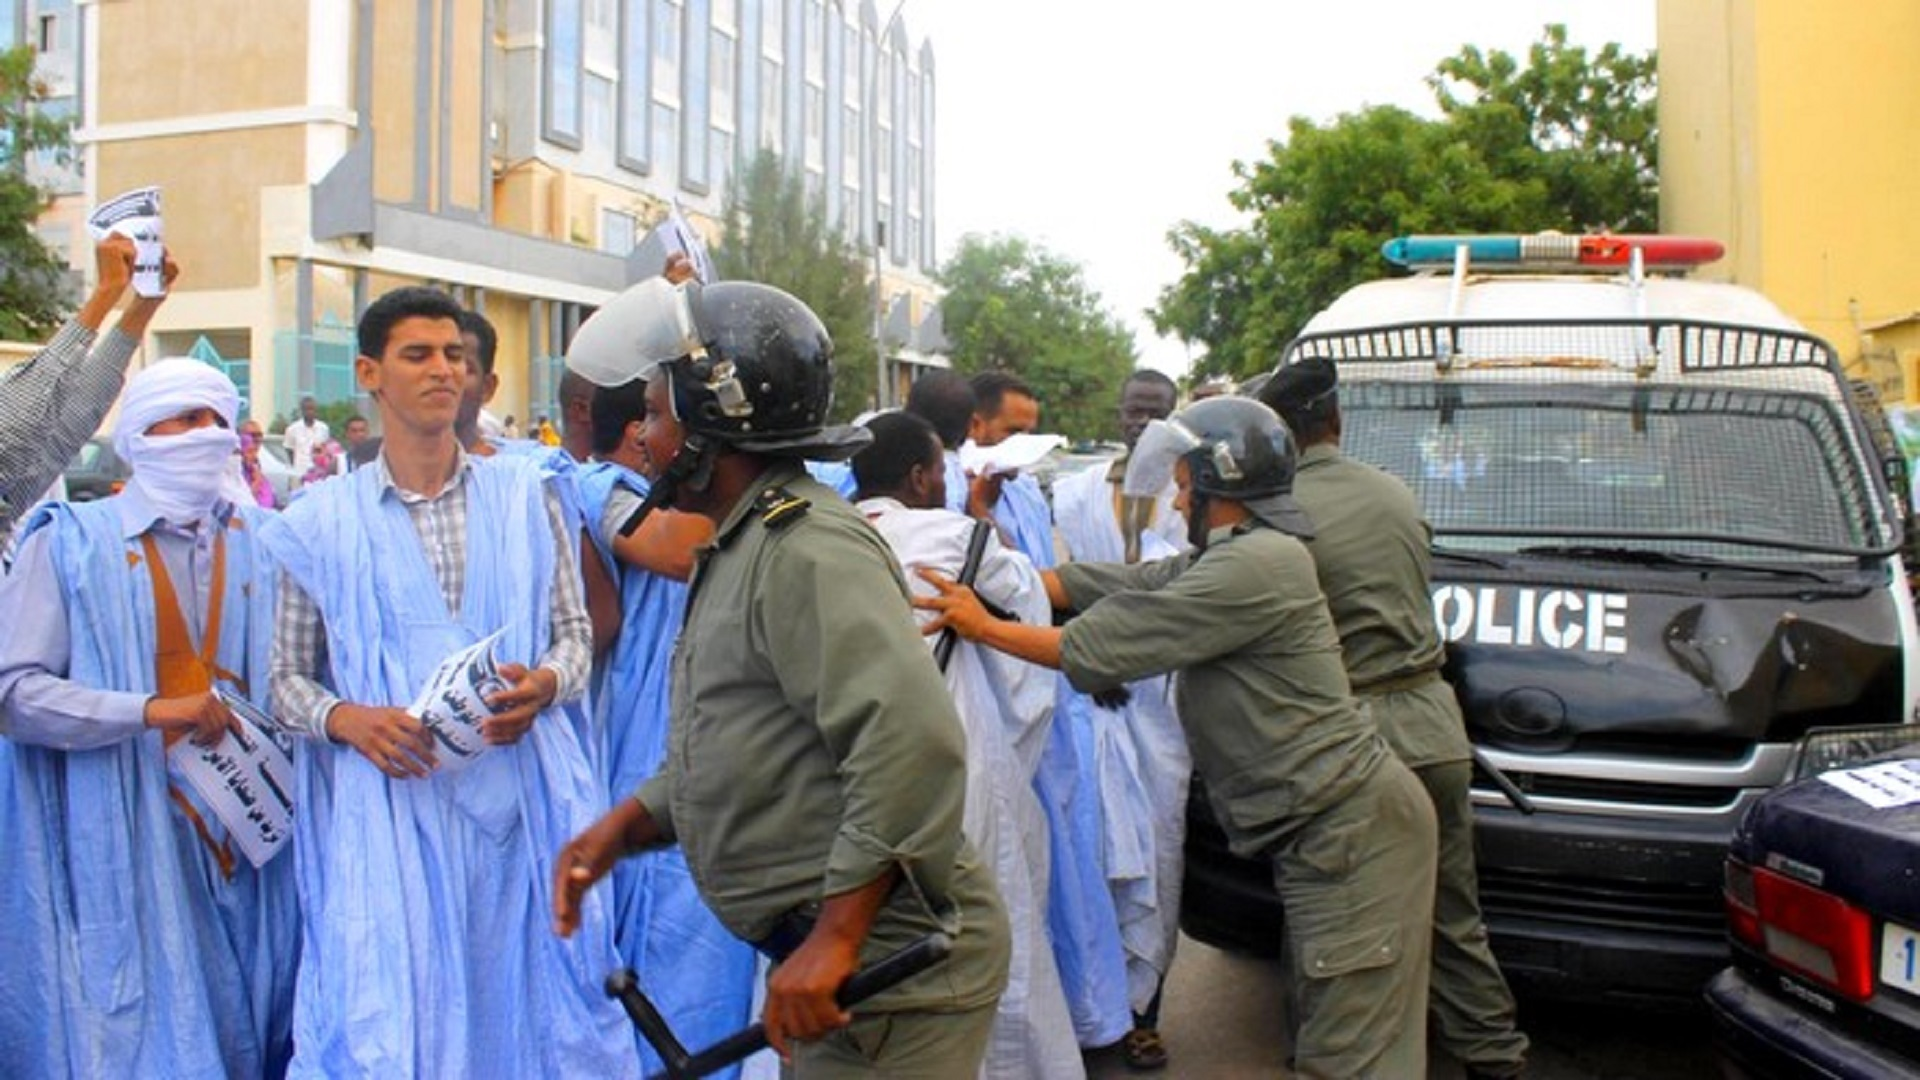 Public criticism faced by arbitrary arrests in Mauritania